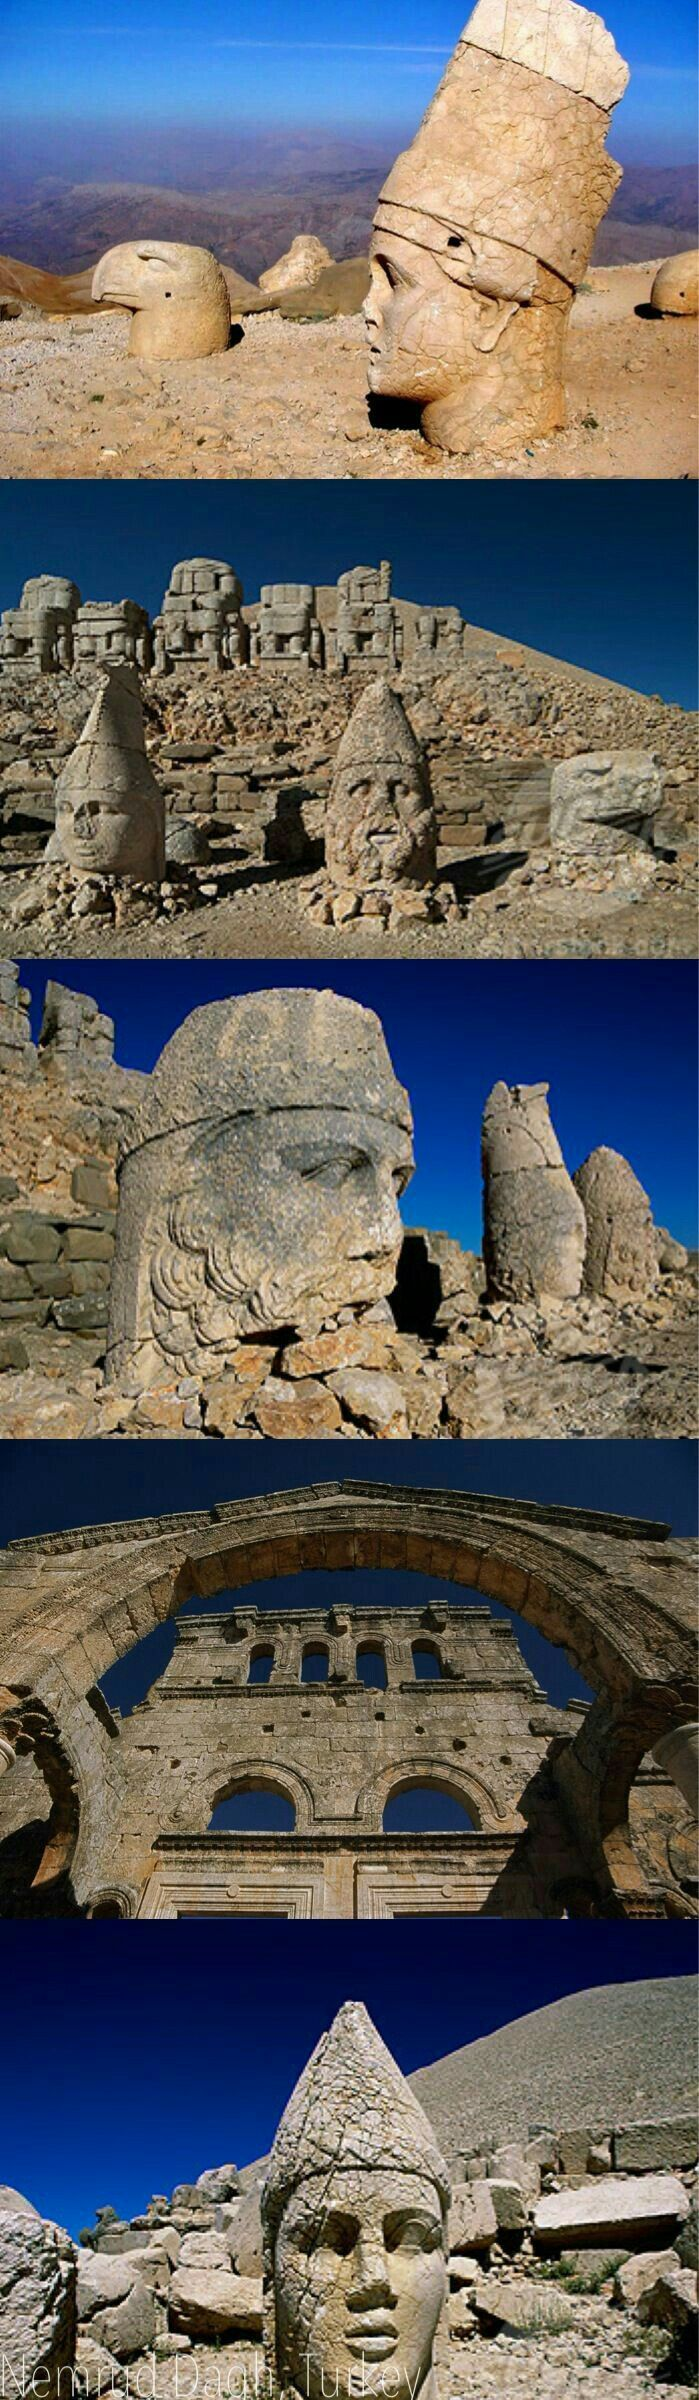 Nemrut Dag (Mount Nemrut), classified as World Heritage Site by UNESCO, in Eastern Anatolia, Turkey